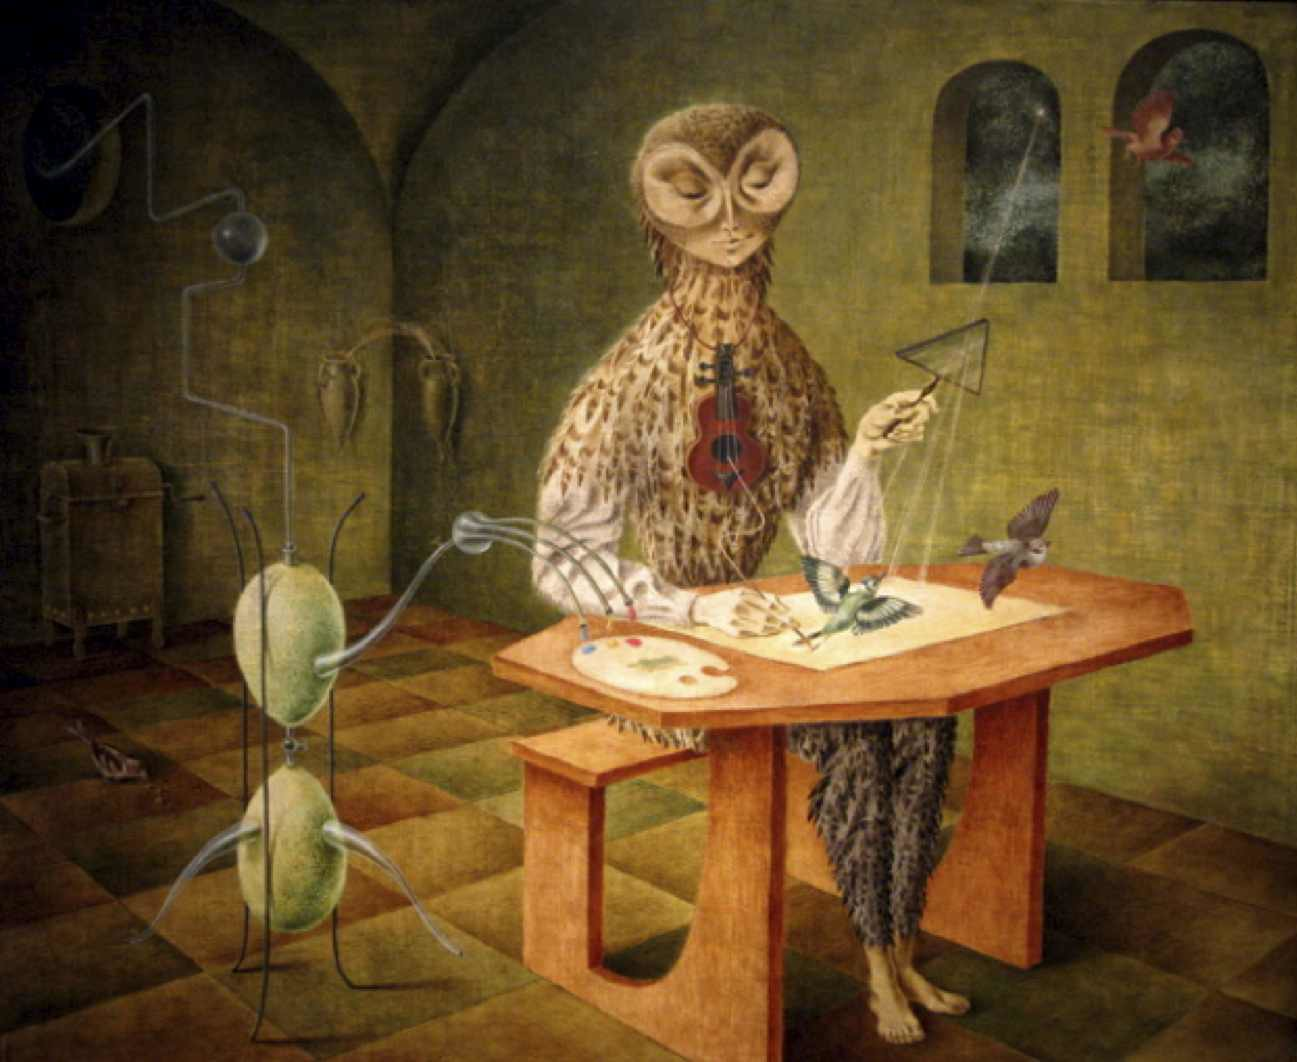 """Fig. 11: Remedios Varo,  The Creation of the Birds (La Creación de los pájaros),  1957                                Normal    0                false    false    false       EN-US    JA    X-NONE                                                                                                                                                                                                                                                                                                                                                                                                                                                                                                                                                           /* Style Definitions */ table.MsoNormalTable {mso-style-name:""""Table Normal""""; mso-tstyle-rowband-size:0; mso-tstyle-colband-size:0; mso-style-noshow:yes; mso-style-priority:99; mso-style-parent:""""""""; mso-padding-alt:0in 5.4pt 0in 5.4pt; mso-para-margin:0in; mso-para-margin-bottom:.0001pt; mso-pagination:widow-orphan; font-size:12.0pt; font-family:Cambria; mso-ascii-font-family:Cambria; mso-ascii-theme-font:minor-latin; mso-hansi-font-family:Cambria; mso-hansi-theme-font:minor-latin;}"""